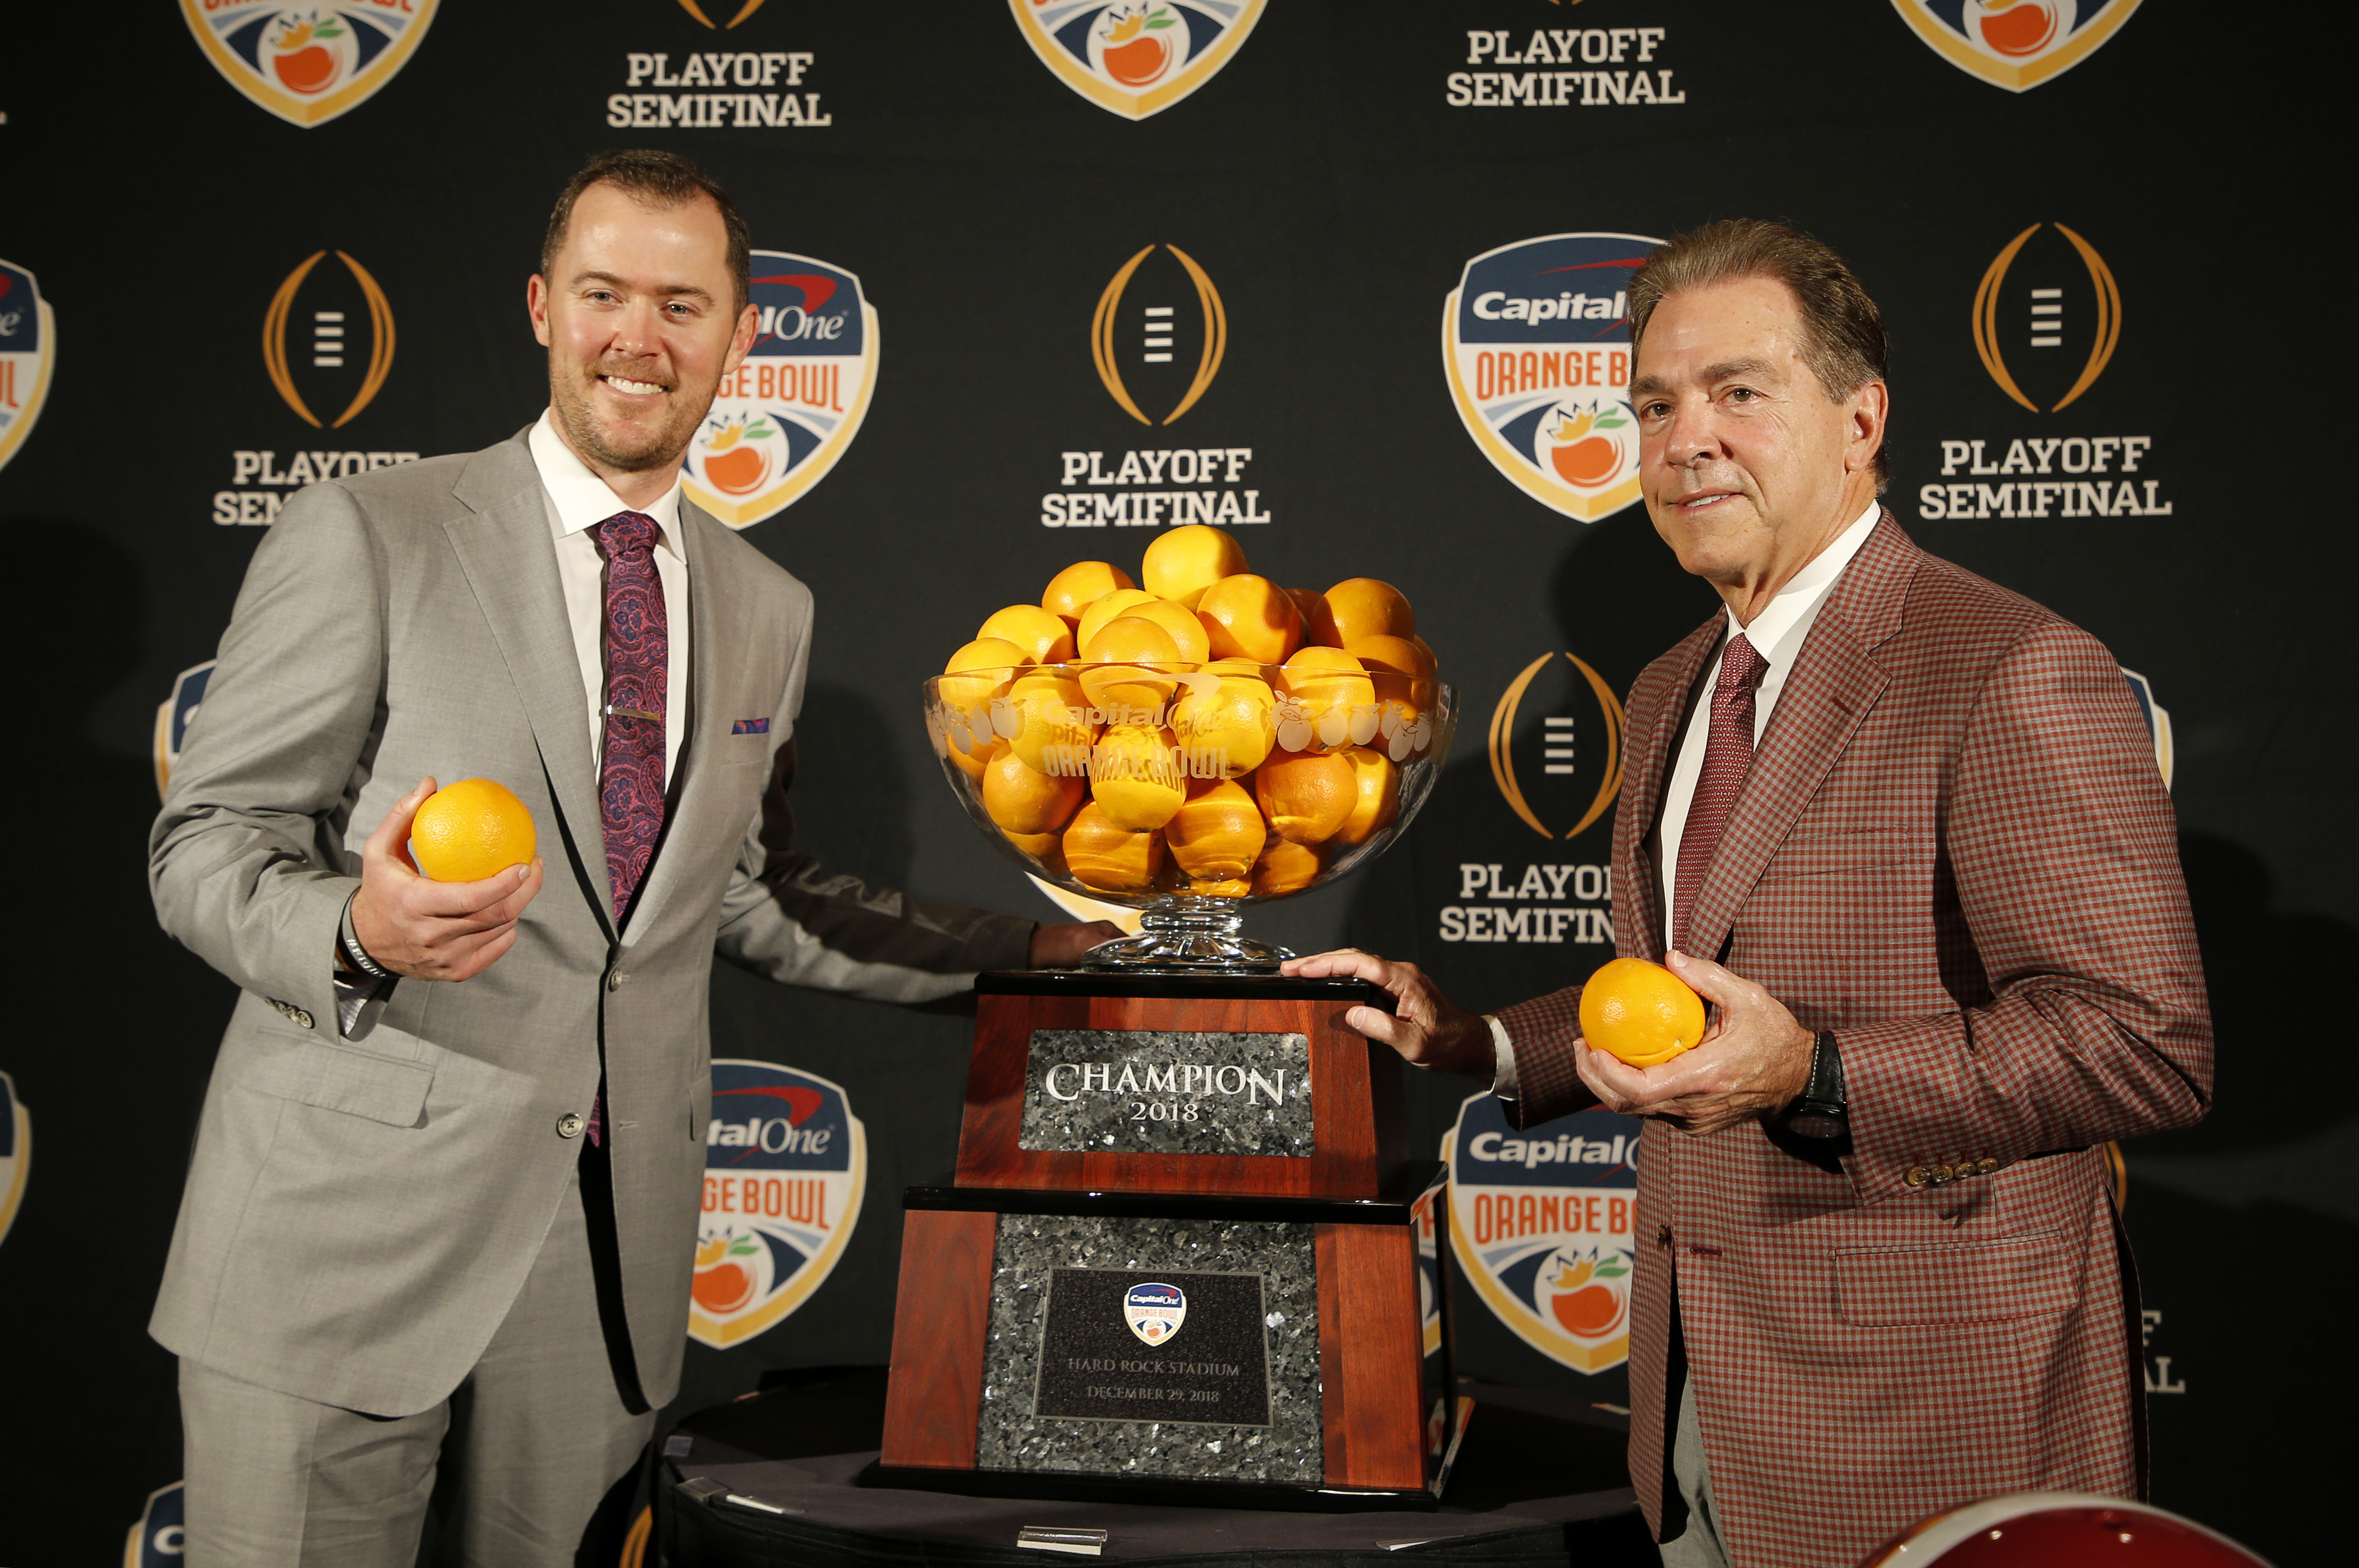 Alabama head coach Nick Saban, right, stands with Oklahoma head coach Lincoln Riley at an NCAA college football news conference in Fort Lauderdale, Fla., Friday, Dec. 28, 2018. Alabama plays Oklahoma in the Orange Bowl on Saturday, Dec. 29. (AP Photo/Joe Skipper)